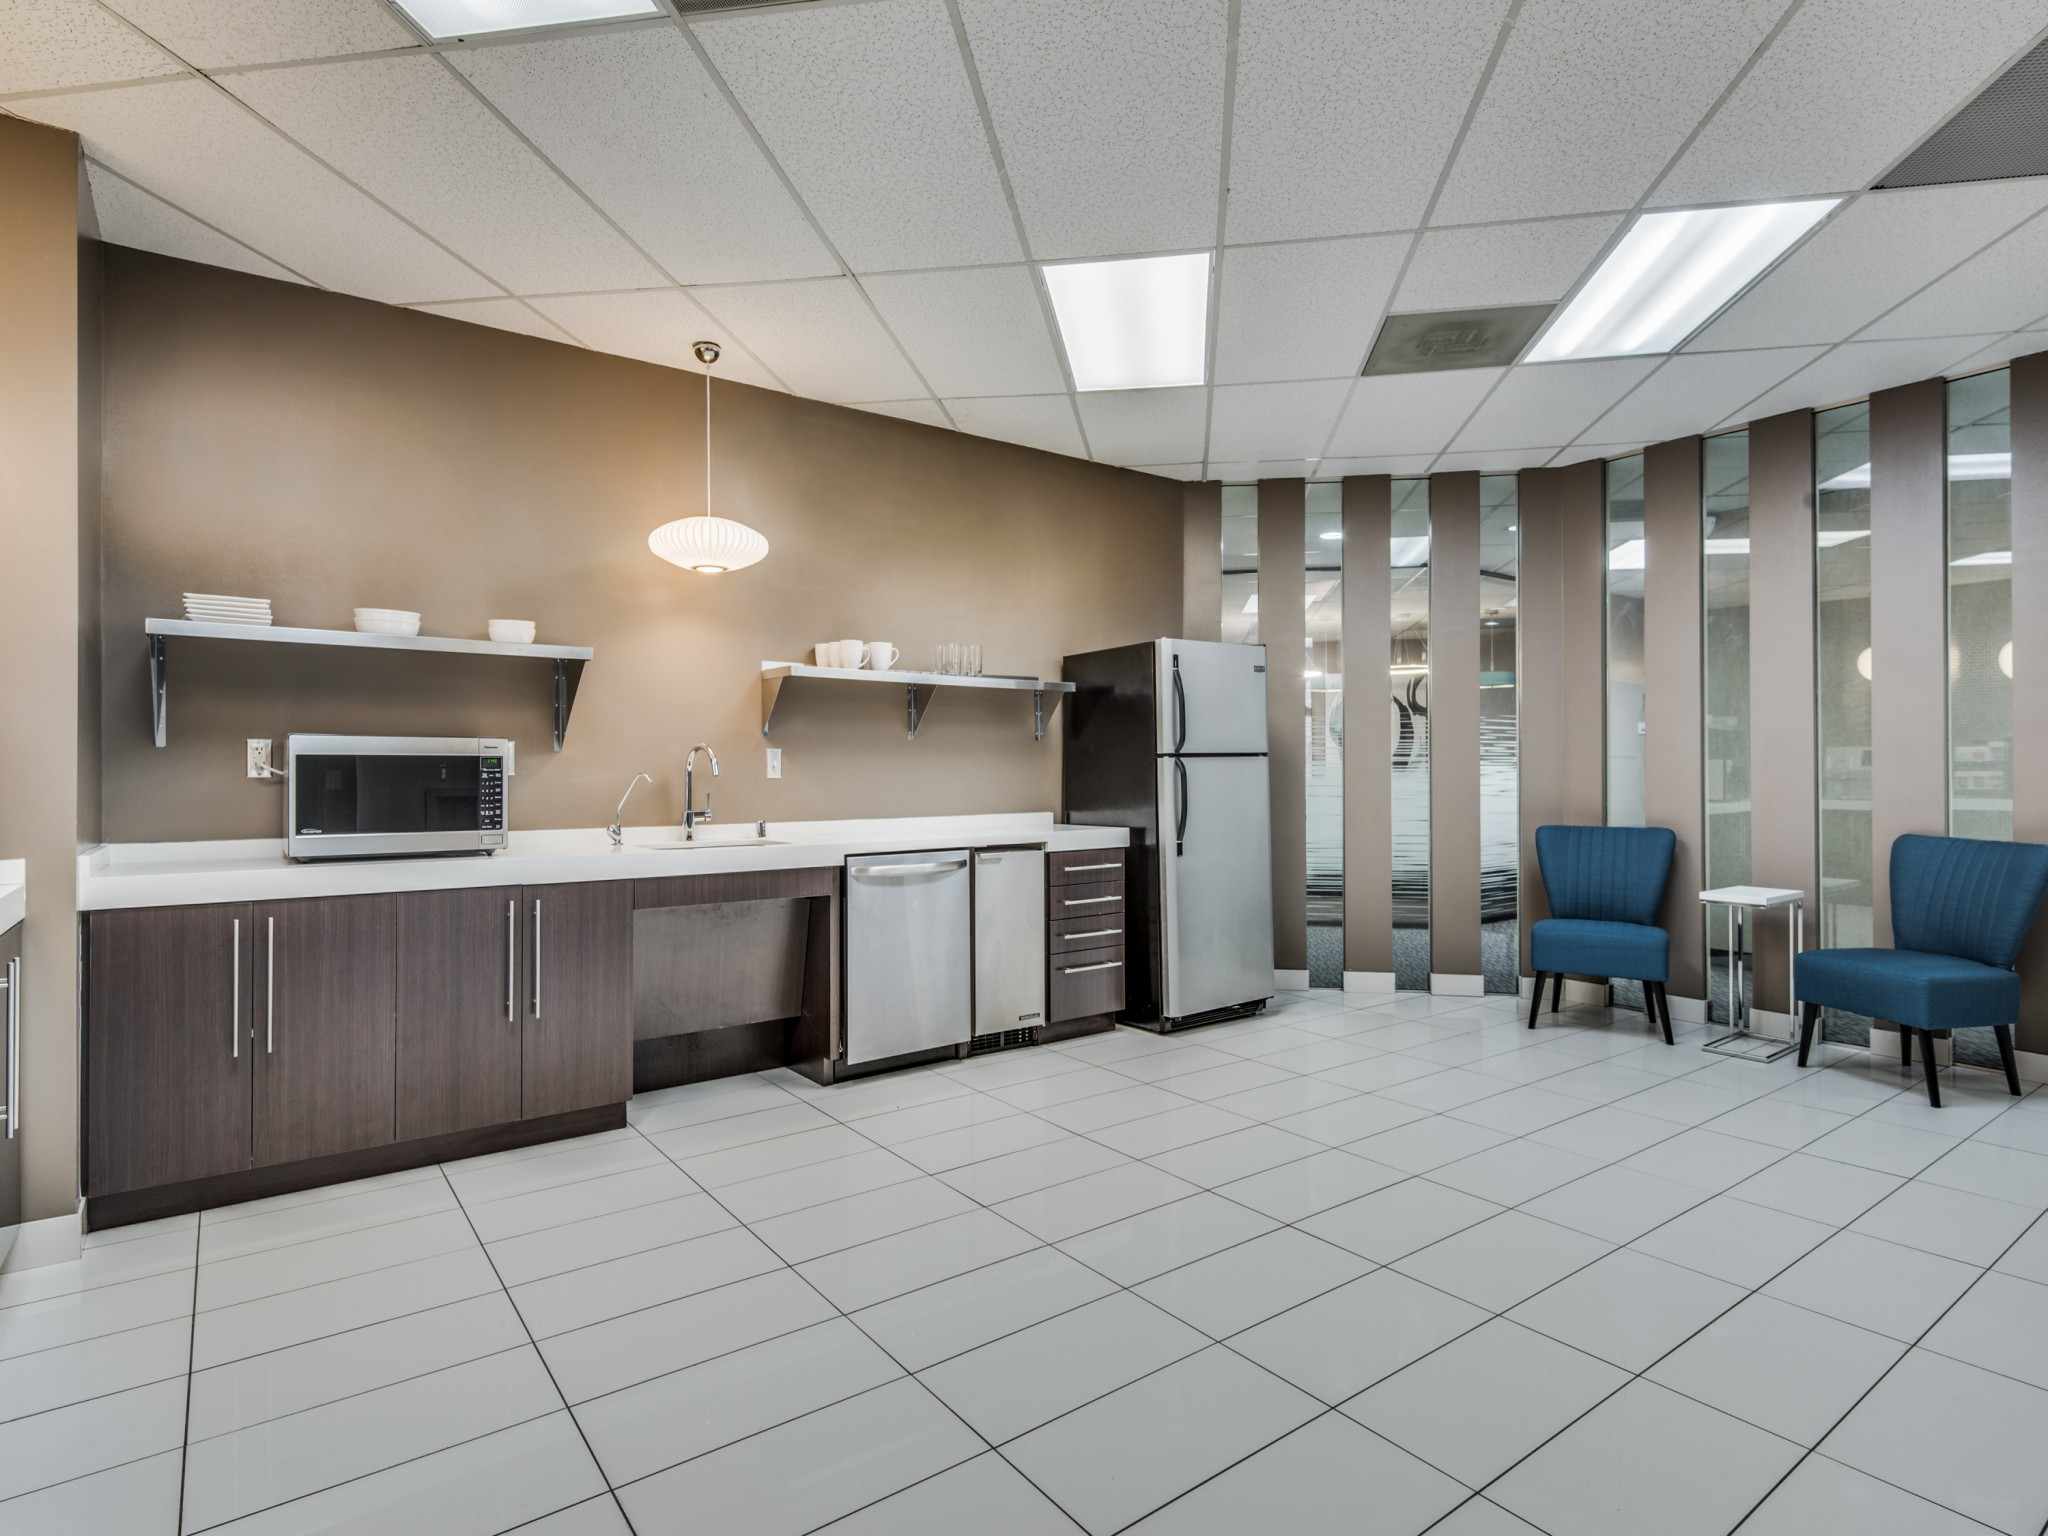 WorkSuites-Grapevine/DFW Airport, Grapevine